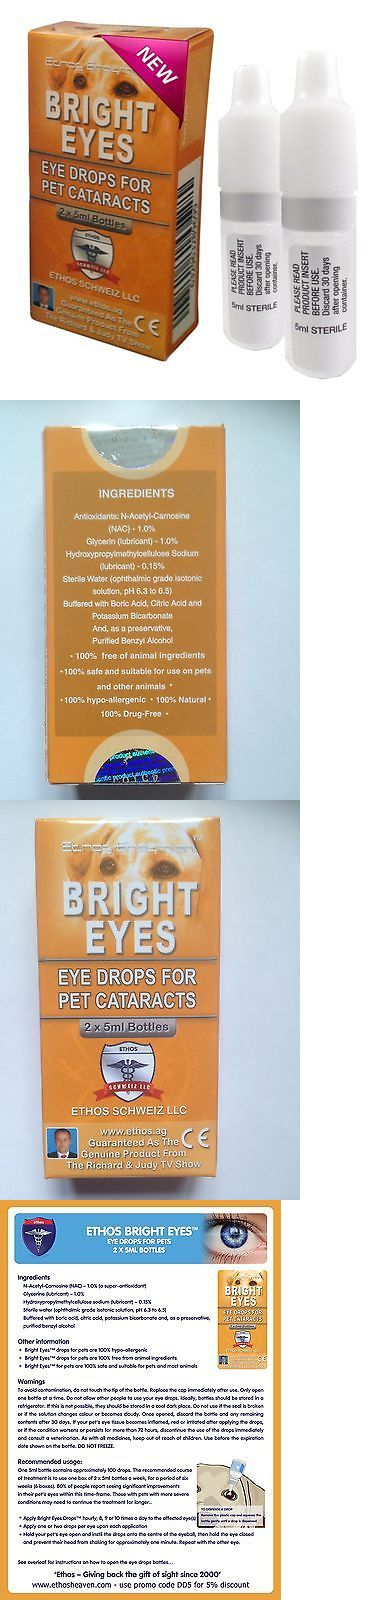 Eye Care 134792: Ethos Bright Eyes Cataract Eye Drops For Dogs And Pets 1 Box - 2 X 5 Ml Bottles -> BUY IT NOW ONLY: $59.97 on eBay!